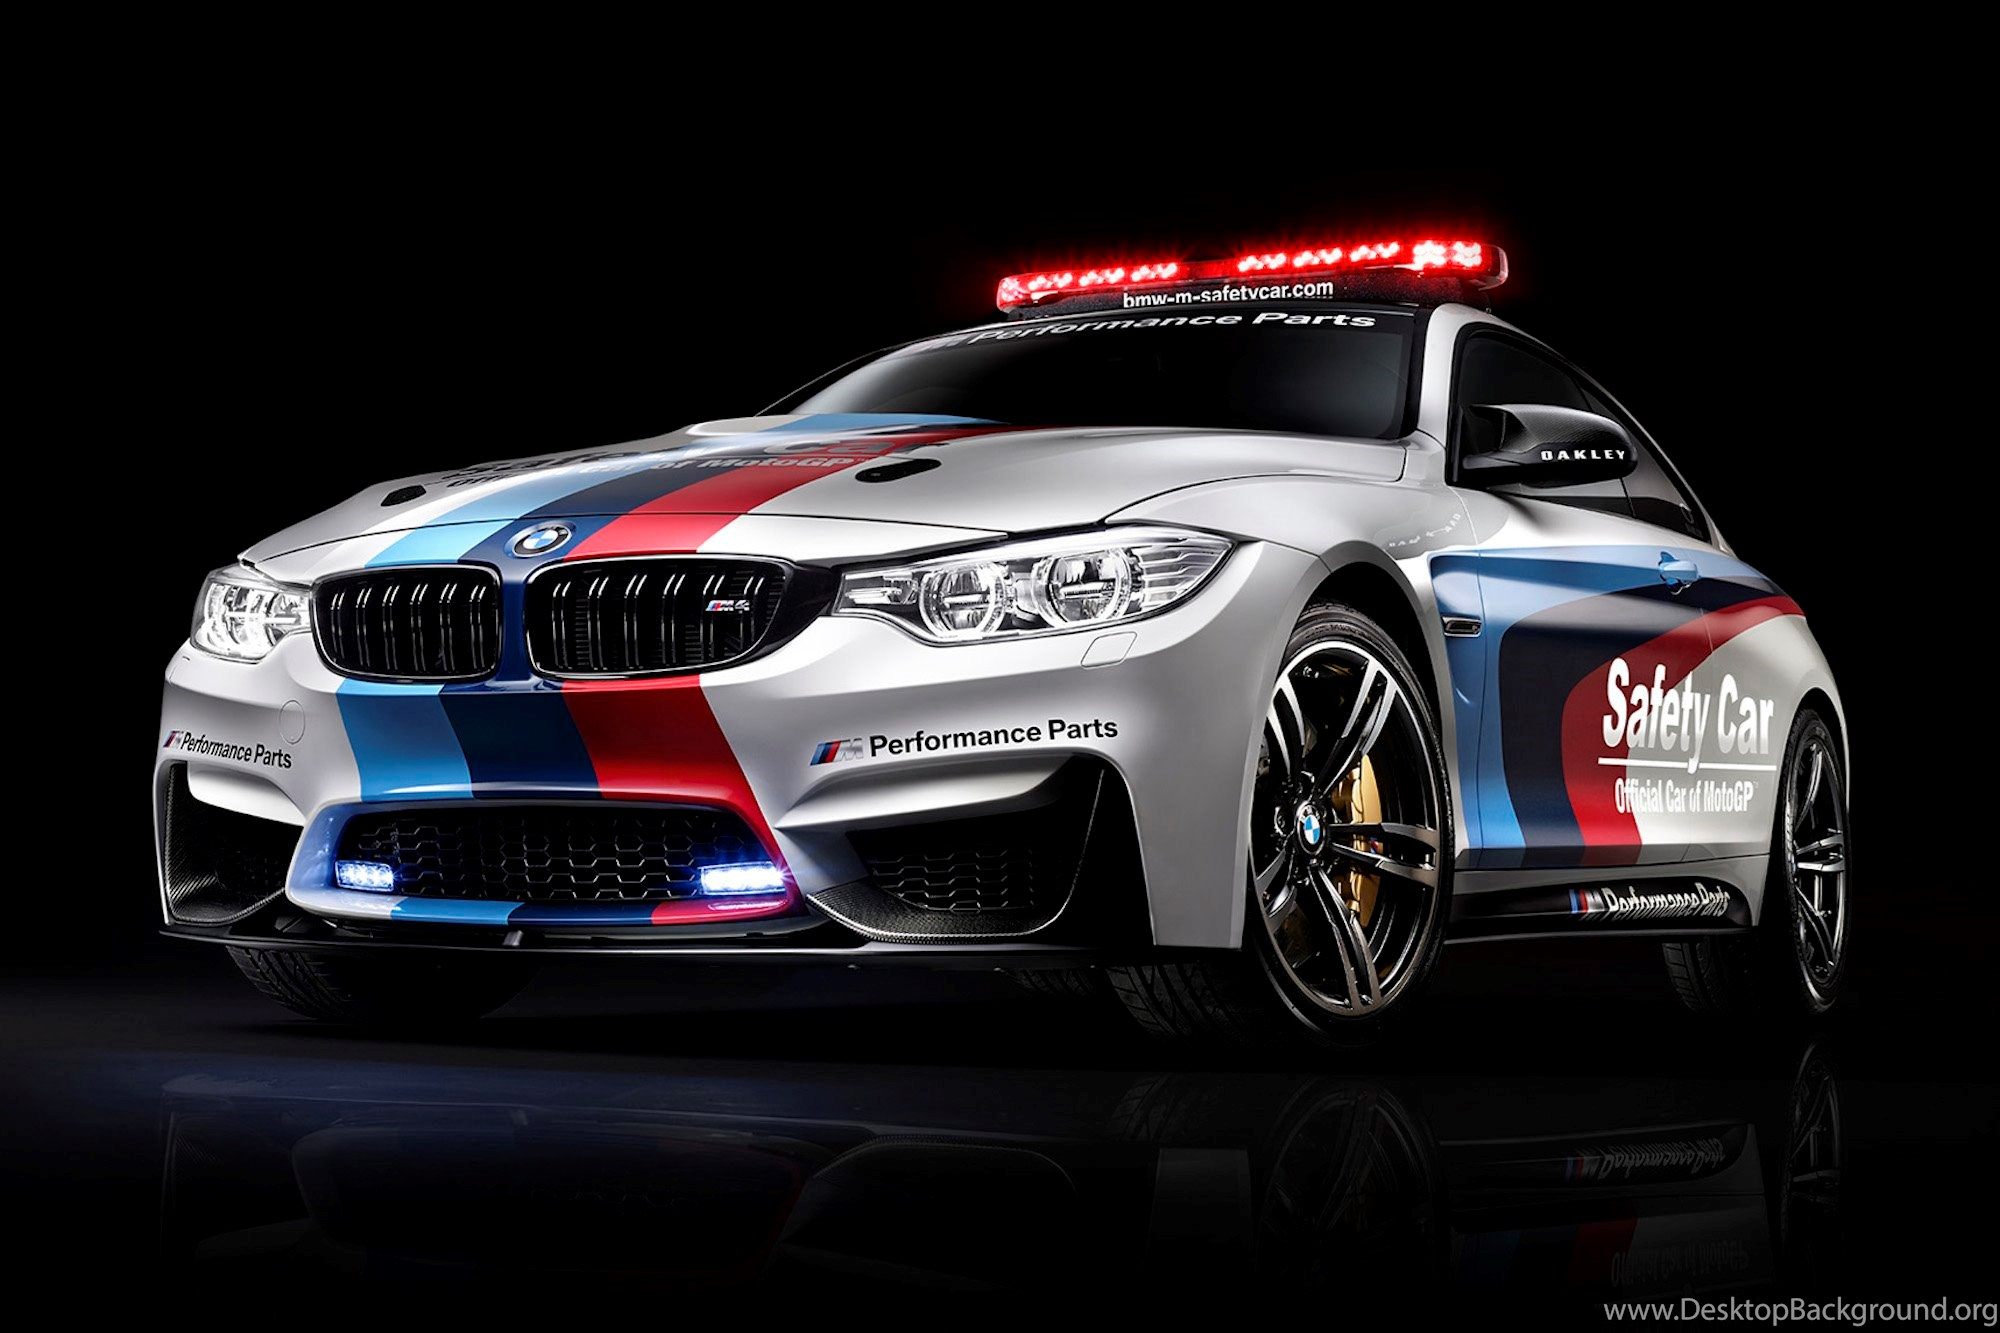 2014 BMW M4 Coupe MotoGP Safety Car Wallpapers Desktop Background